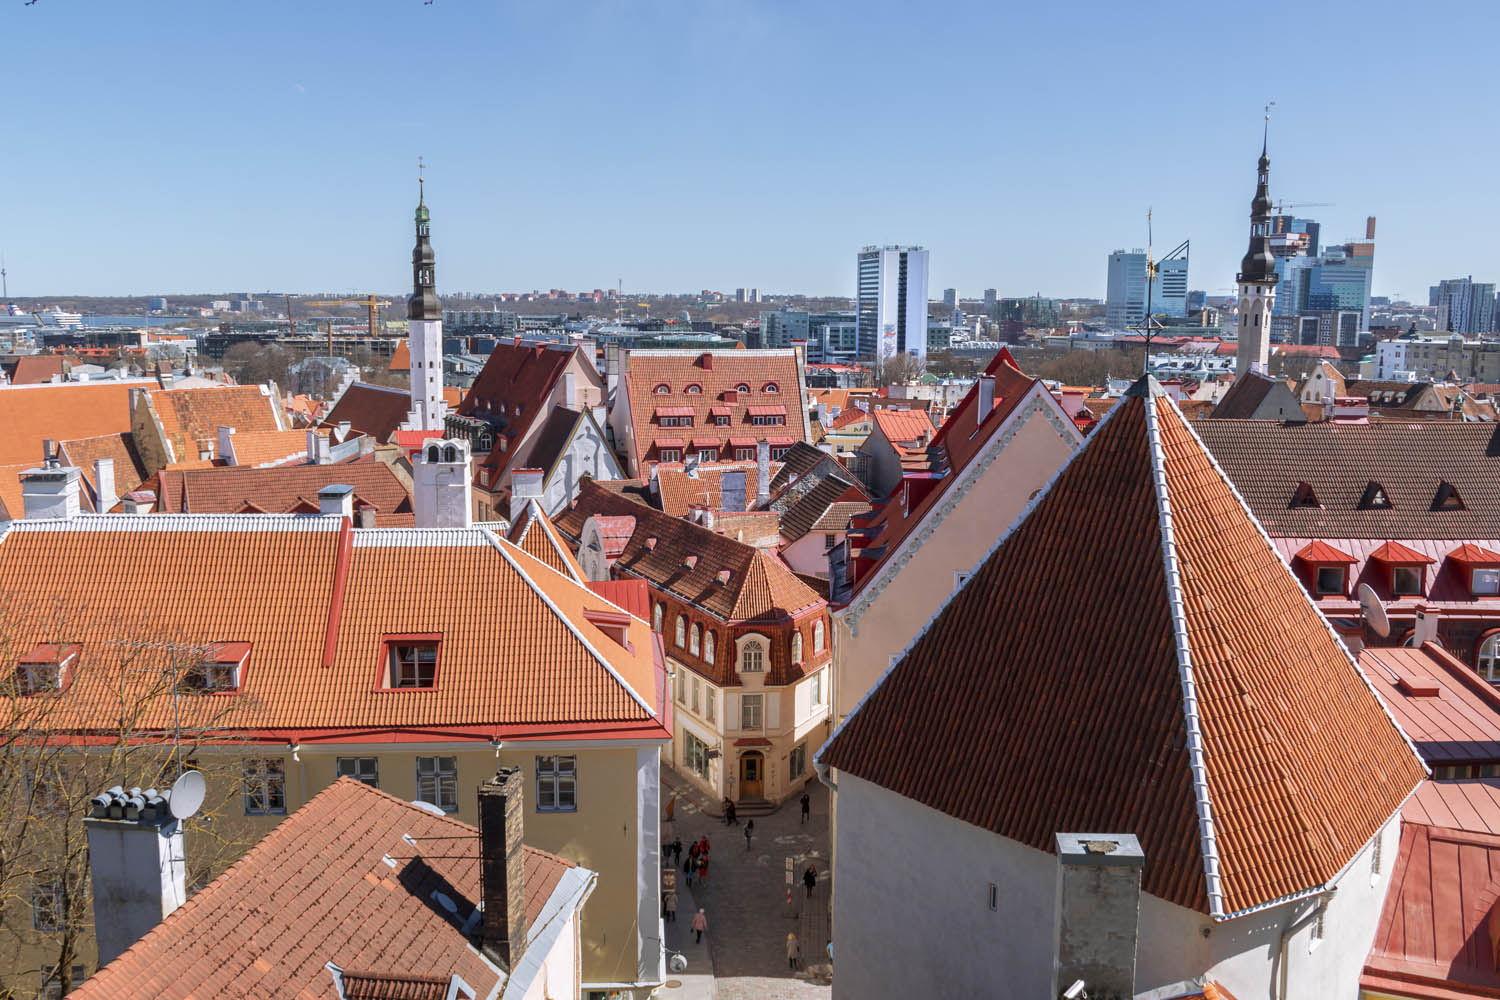 The Old Town of Tallinn, always so charming!